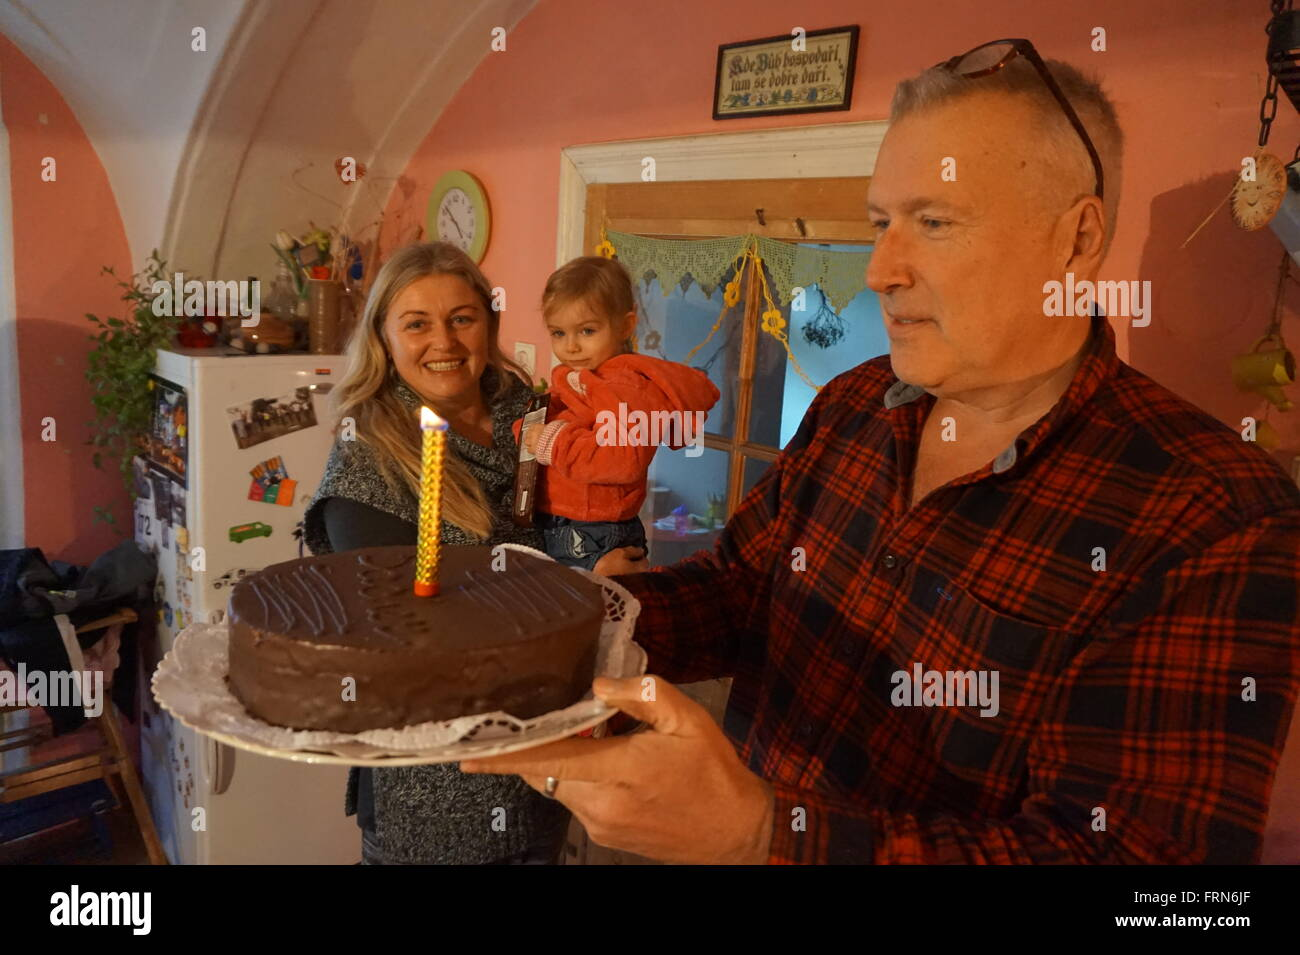 man celebrates 60th birthday stock photo 100655143 alamy